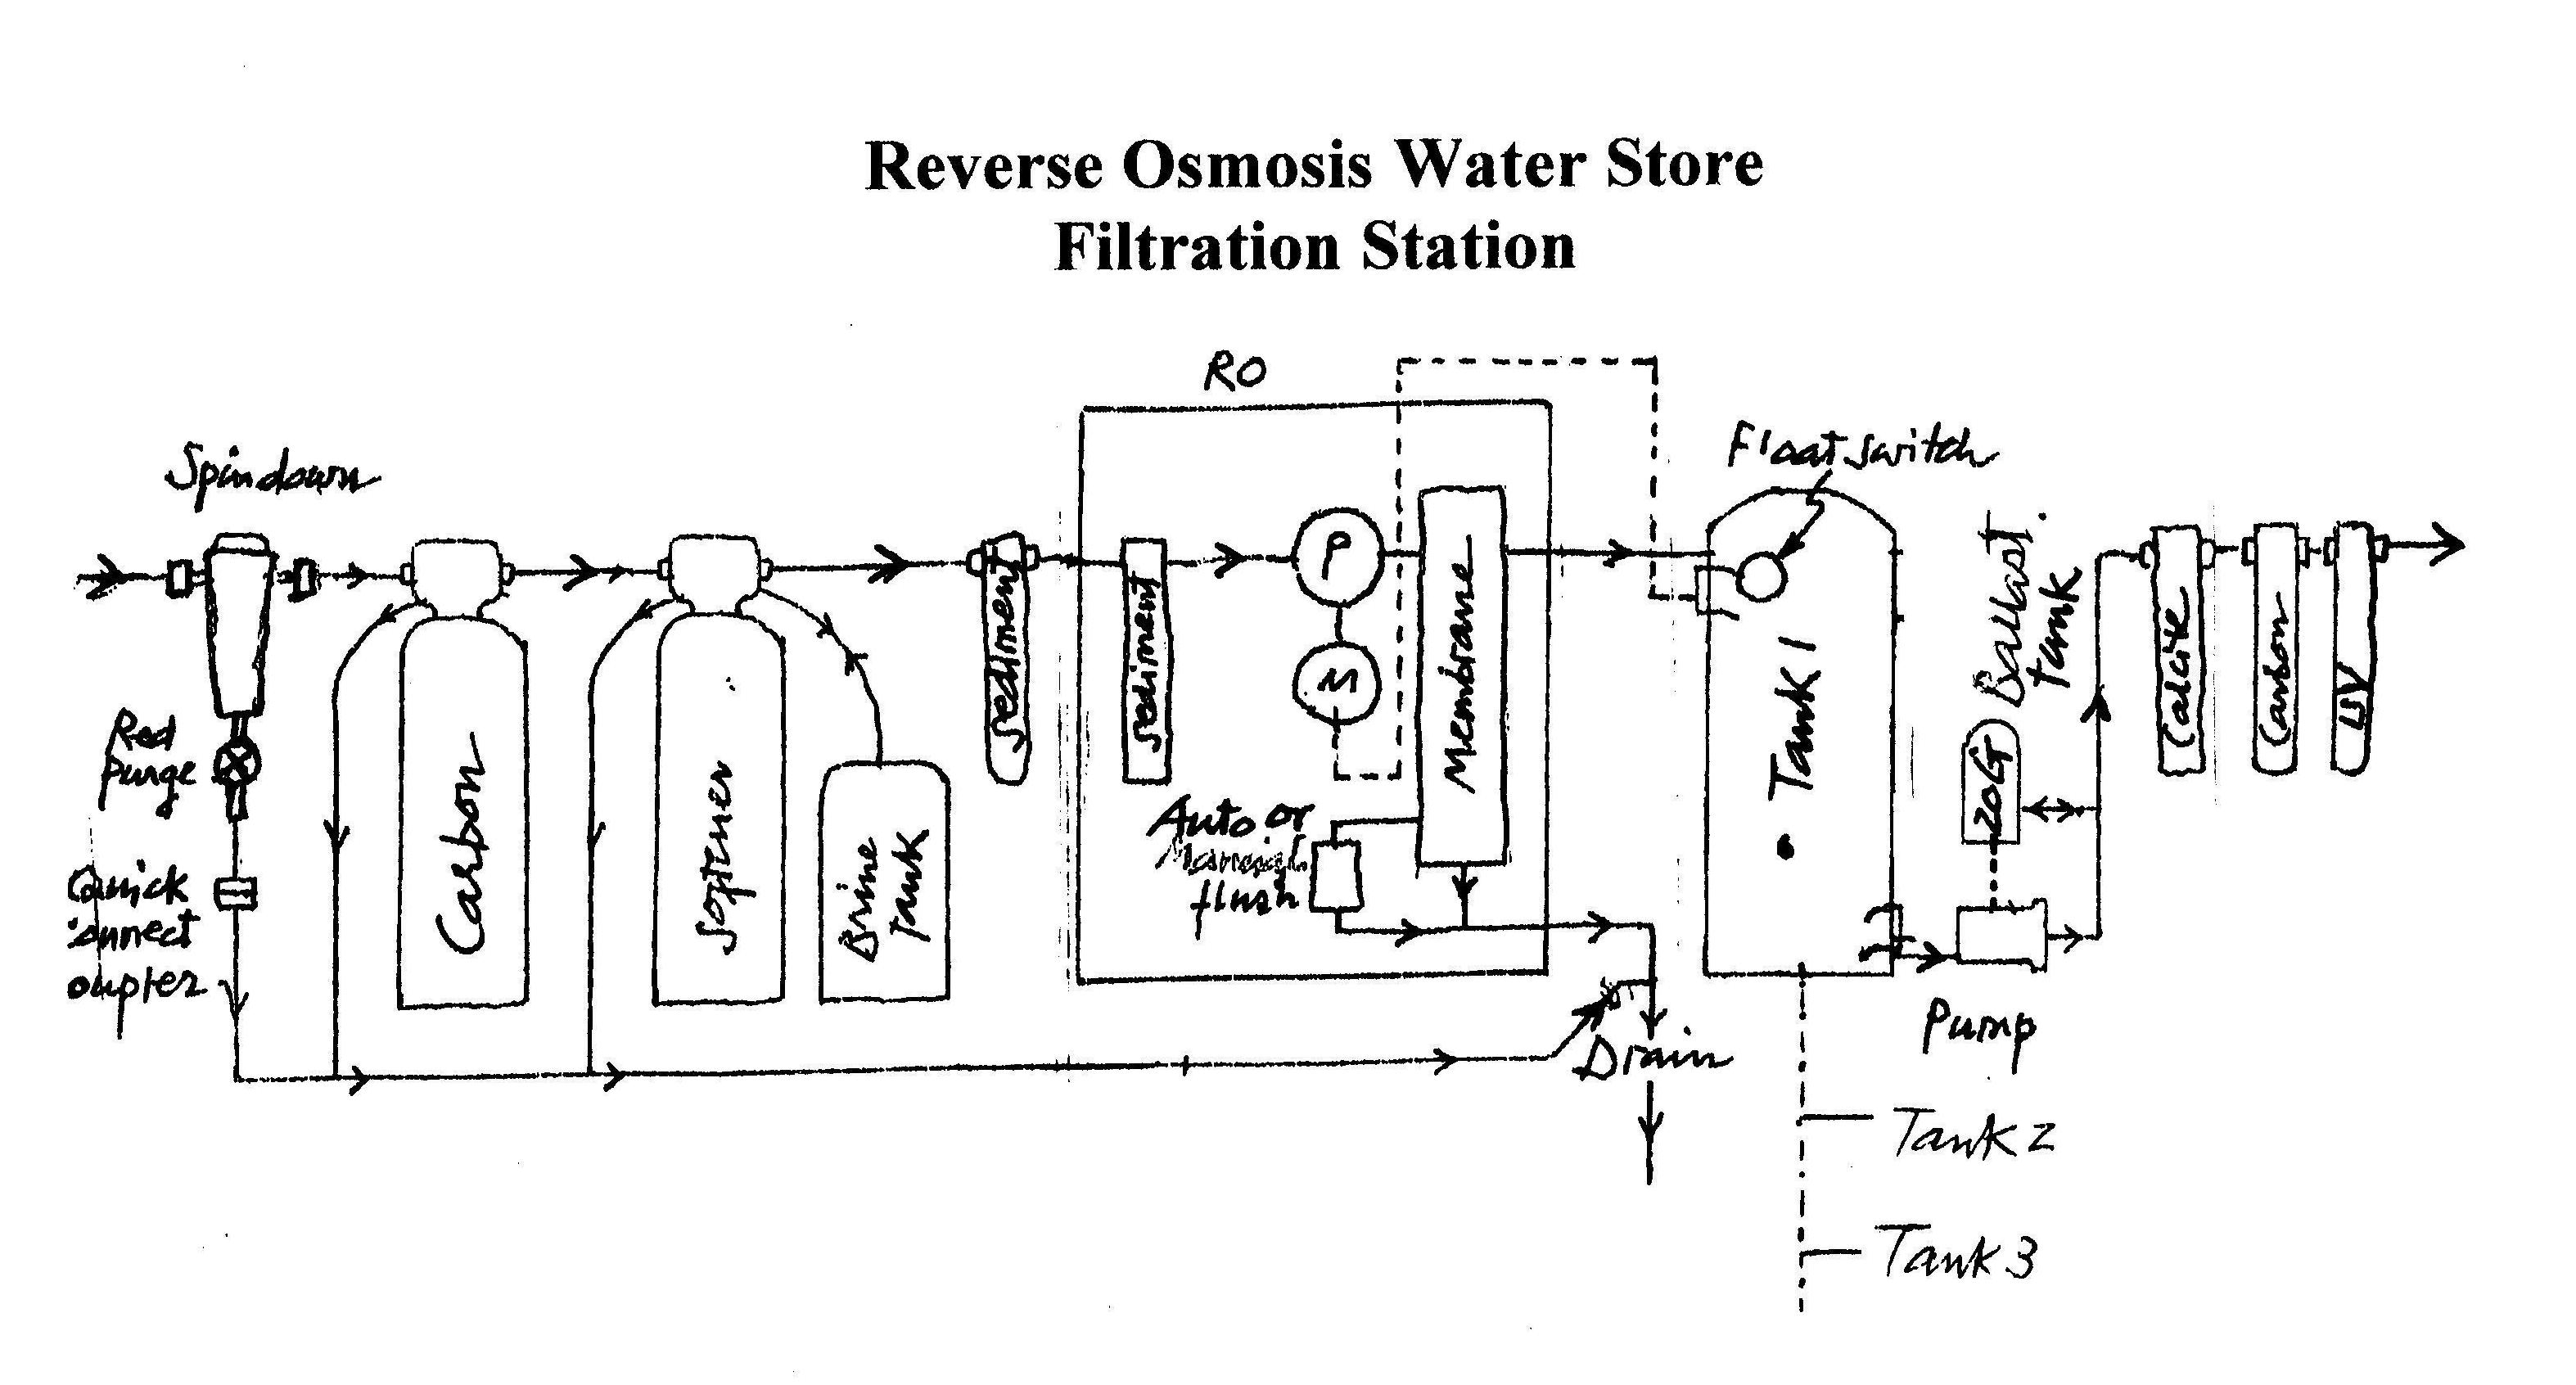 Commercial Water Filter Reverse Osmosis Industrial Piping Instrumentation Diagram Treatment Plant